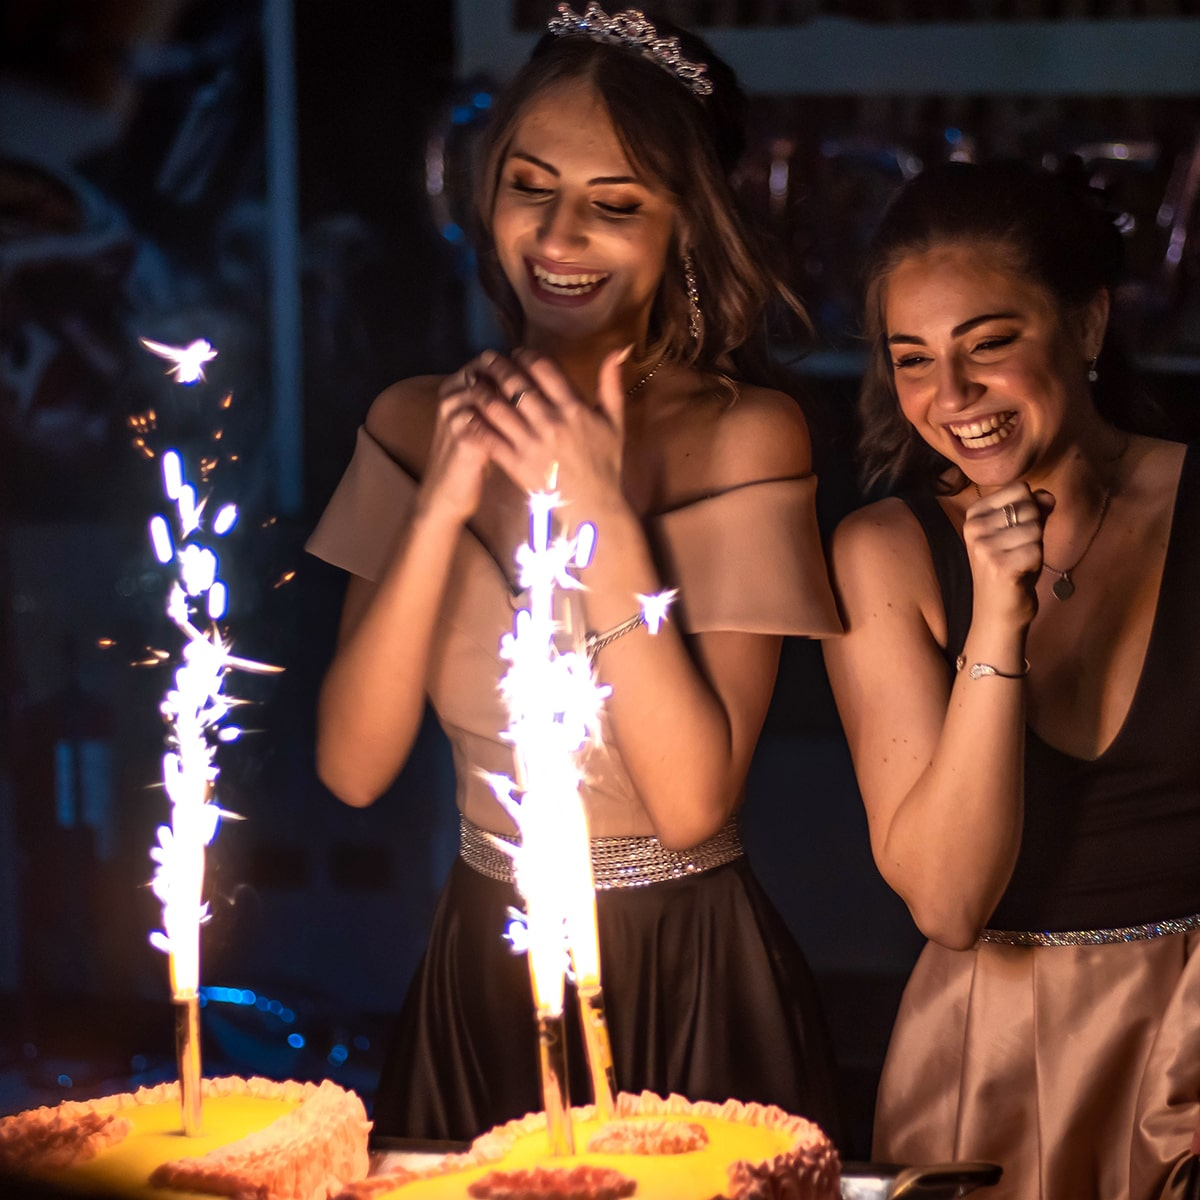 Image of Girls USing Sparklers After the Prom Event